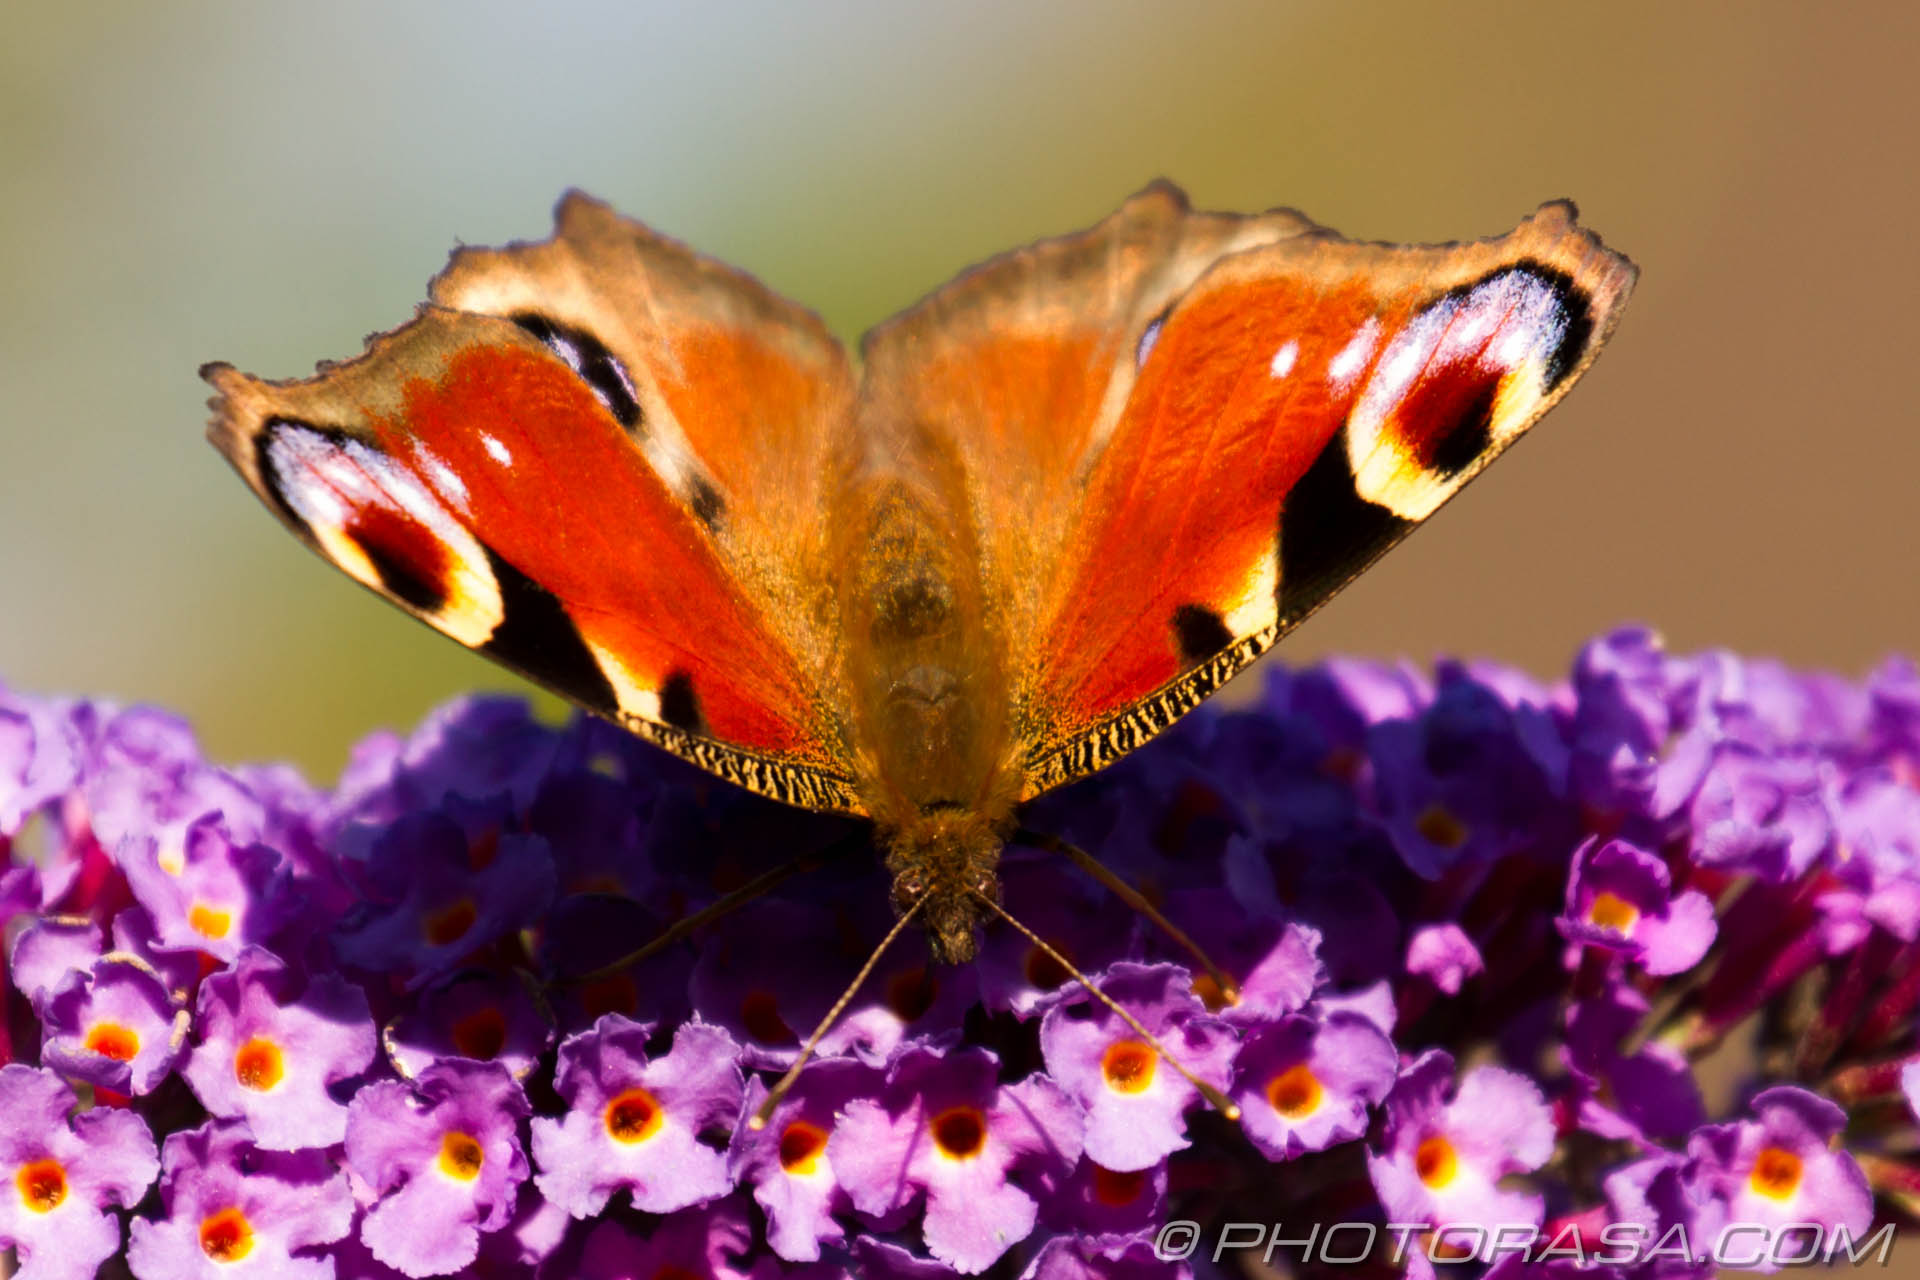 http://photorasa.com/peacock-butterfly/frontal-with-the-flowers/